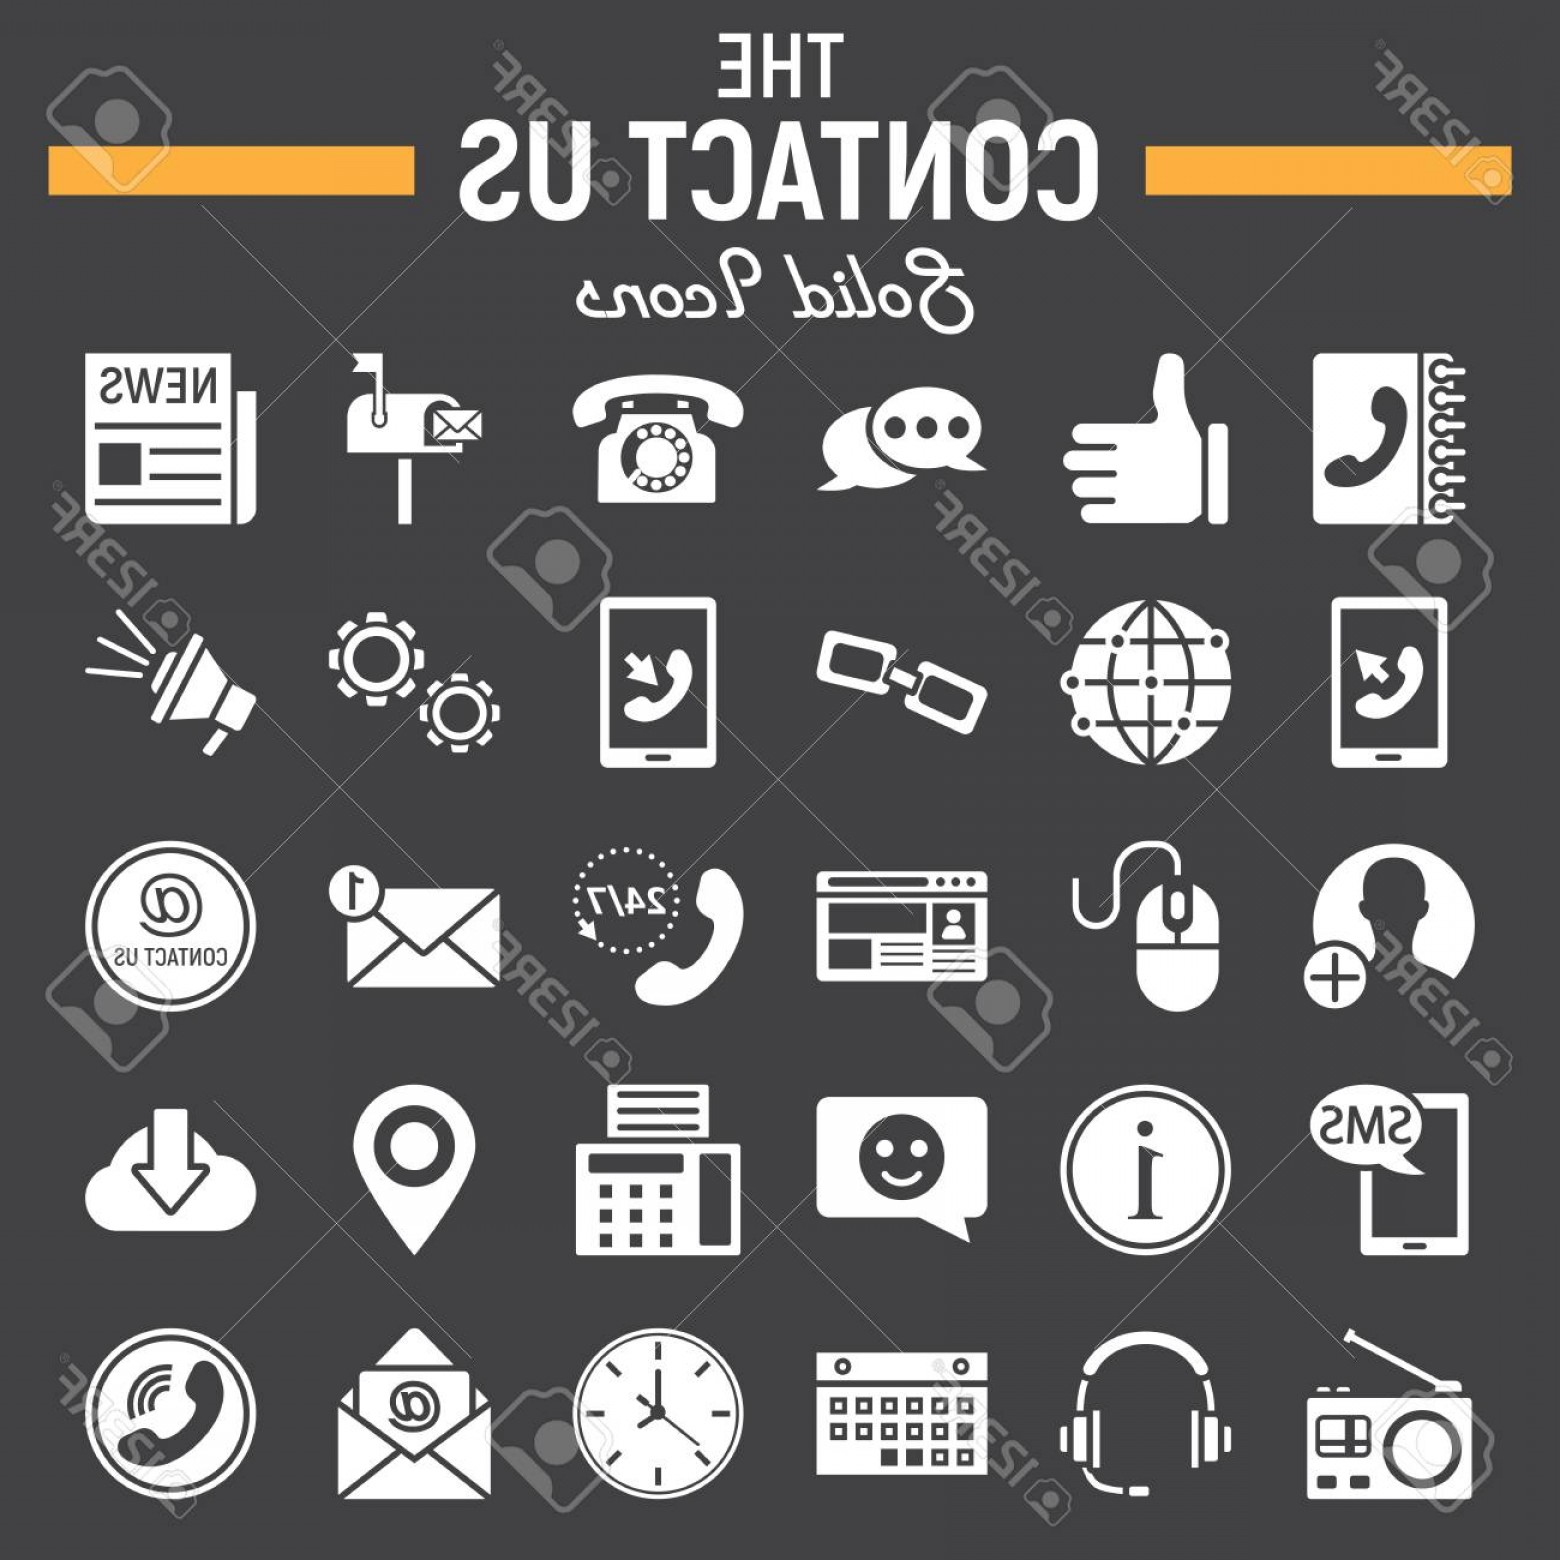 Contact Button Icons Vector Free: Photostock Vector Contact Us Solid Icon Set Web Button Symbols Collection Mobile And Support Vector Sketches Logo Illu